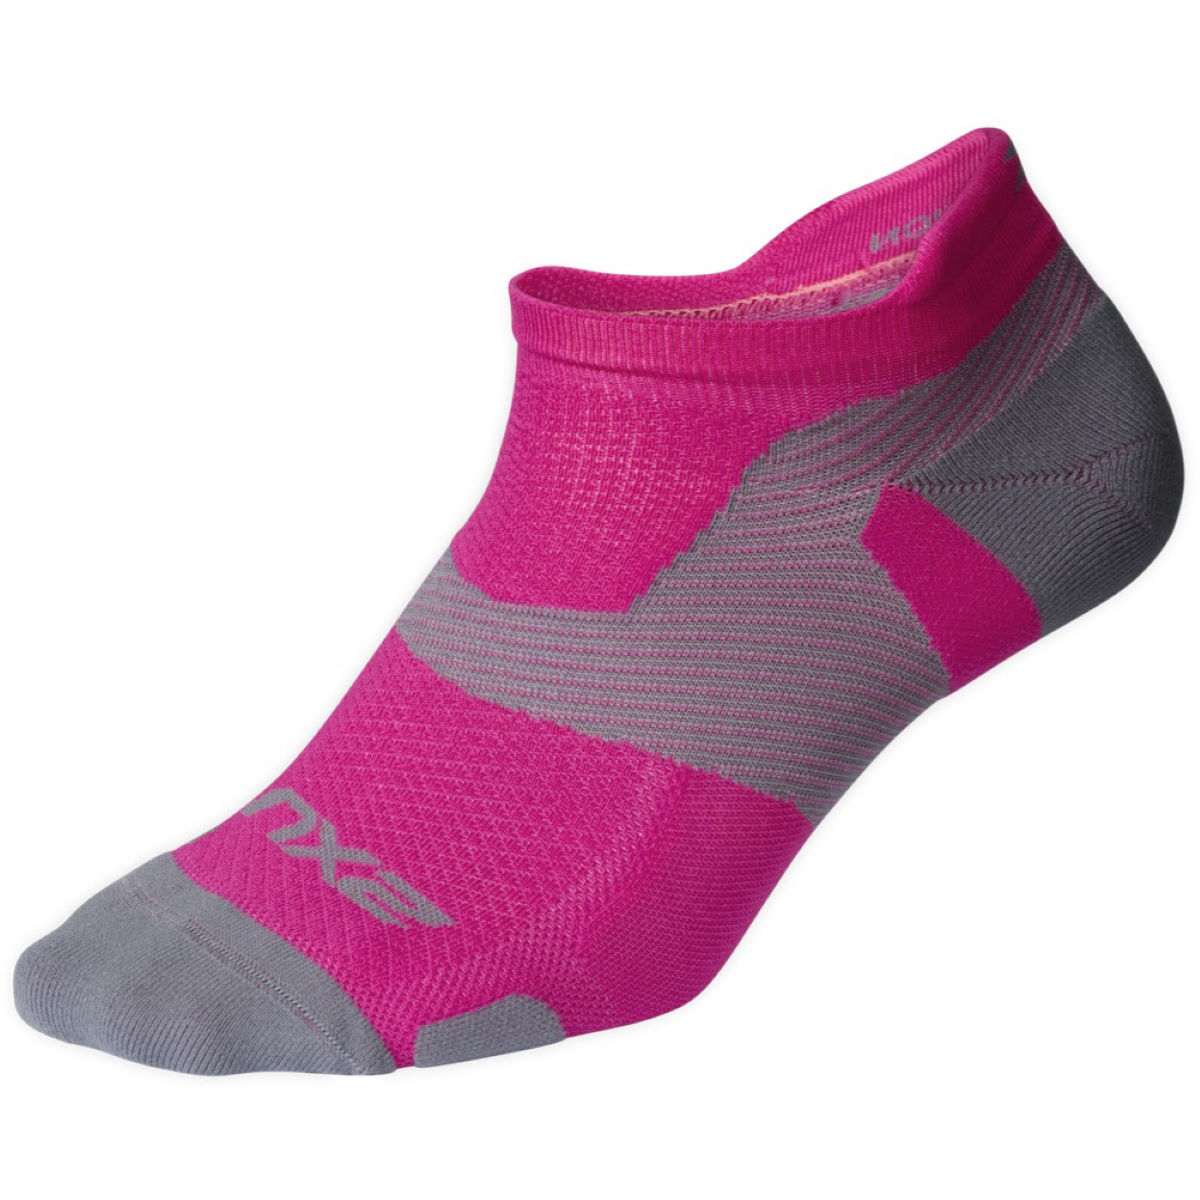 Chaussettes 2XU Vectr Light Cushion No Show (roses) - M Chaussettes